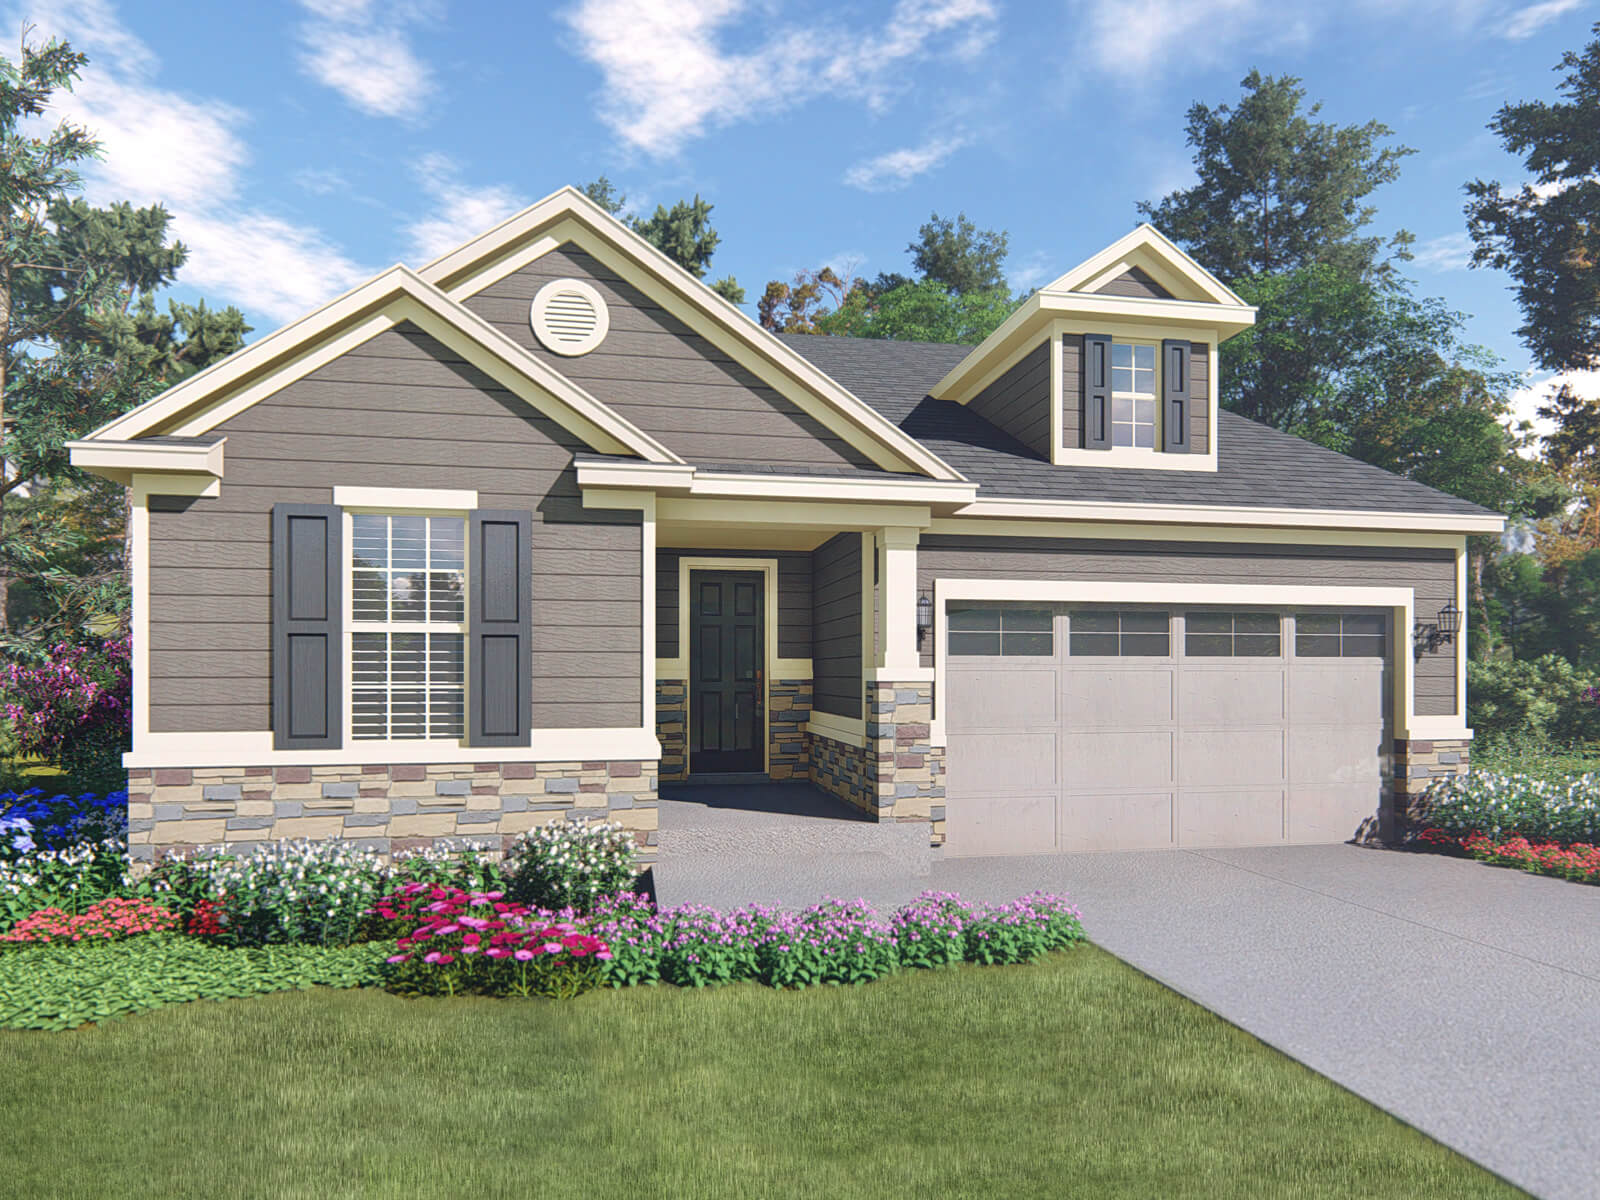 The timberline model 3br 2ba homes for sale in parker co 13elevation b malvernweather Gallery